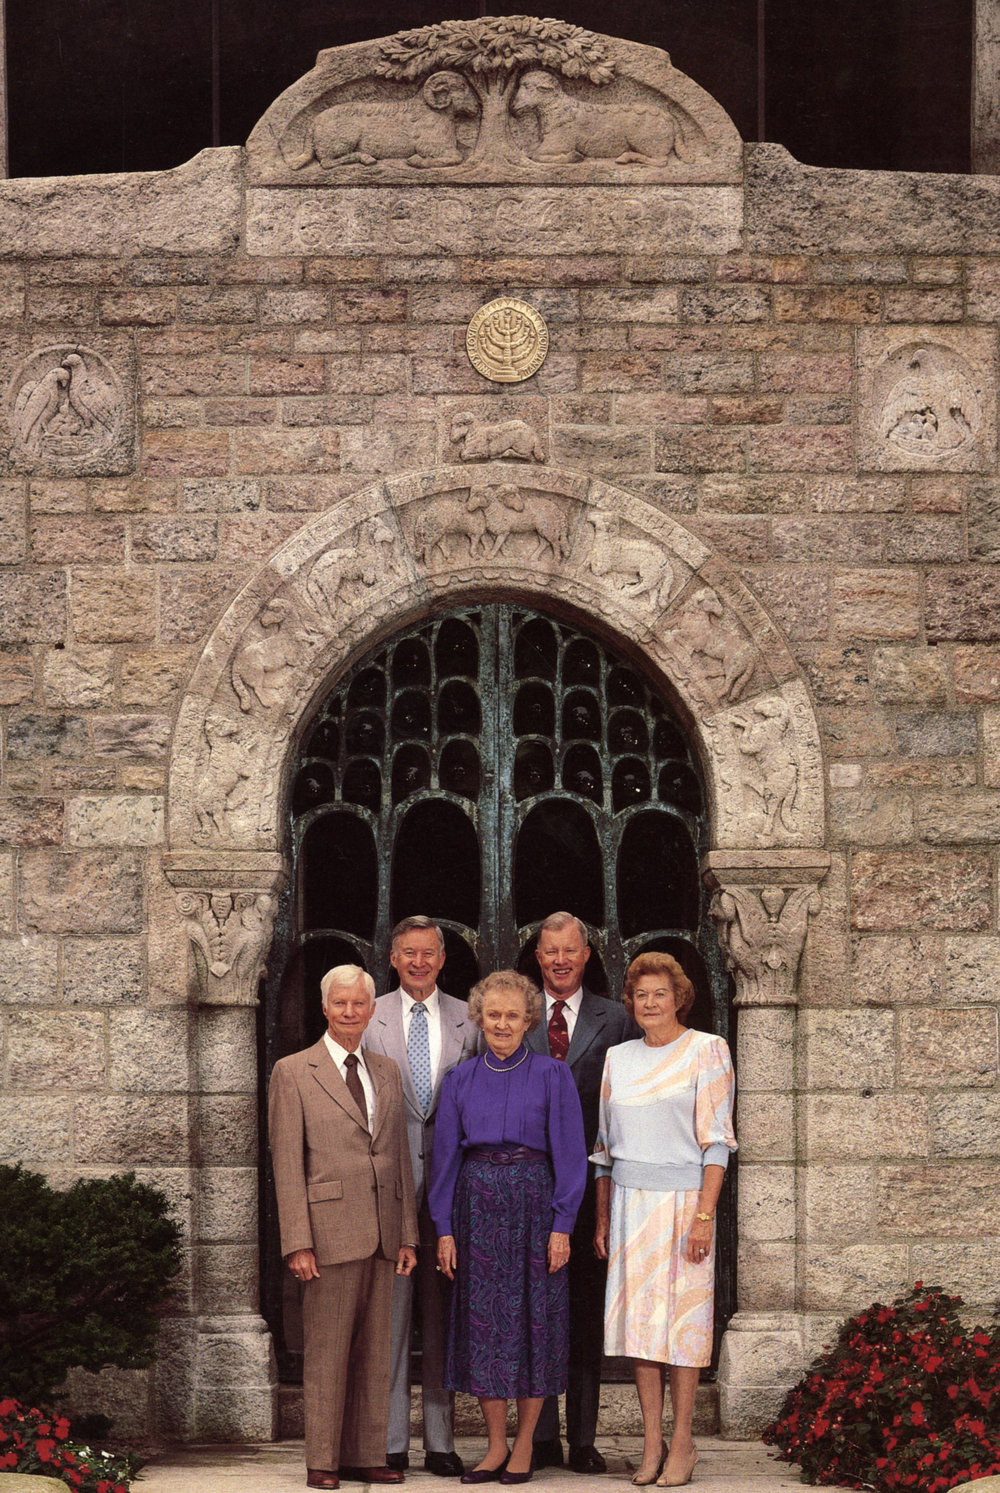 In the summer of 1989, Michael, Lachlan, Karen, Garthowen and Bethel Pitcairn posed in front of the main entrance to Glencairn.